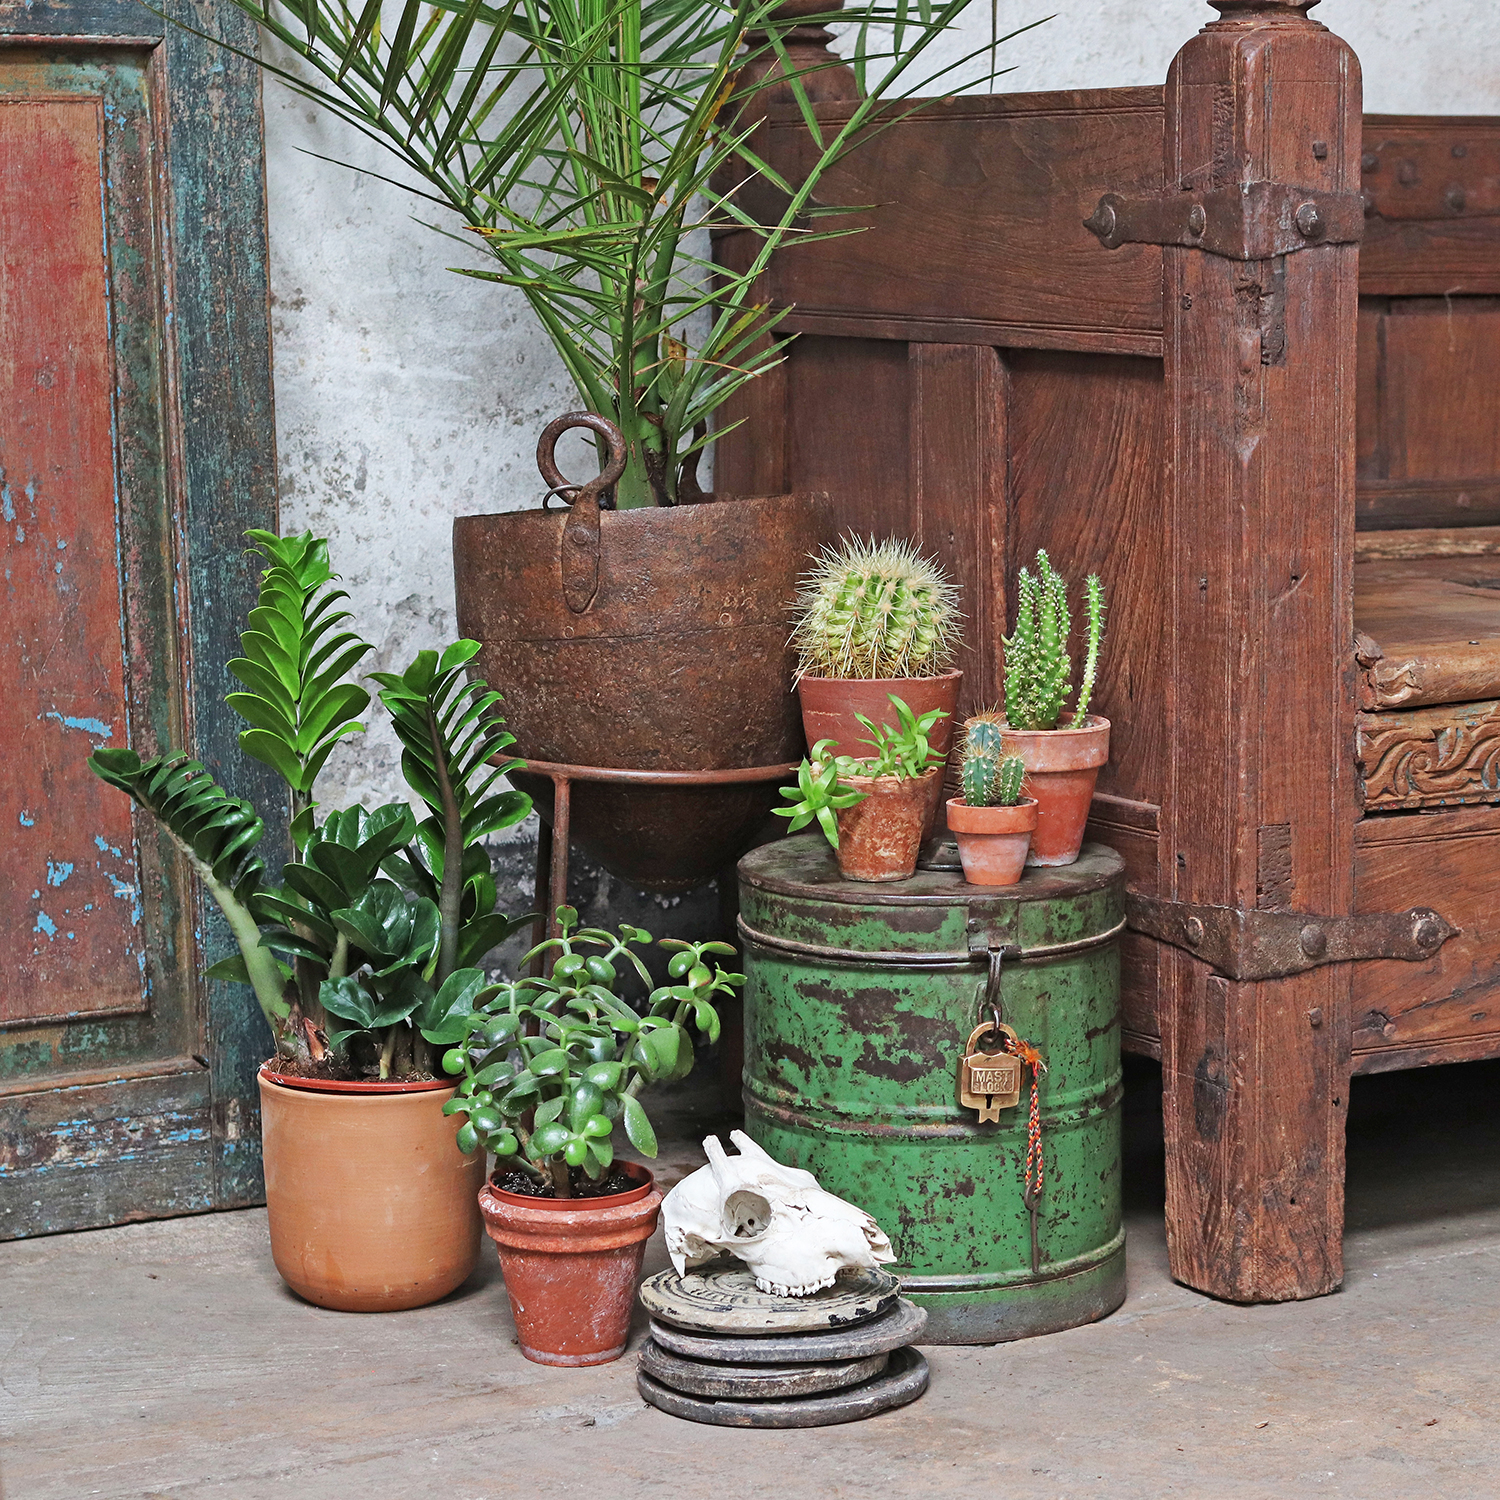 These vintage tins make a great feature for Indian summer interiors